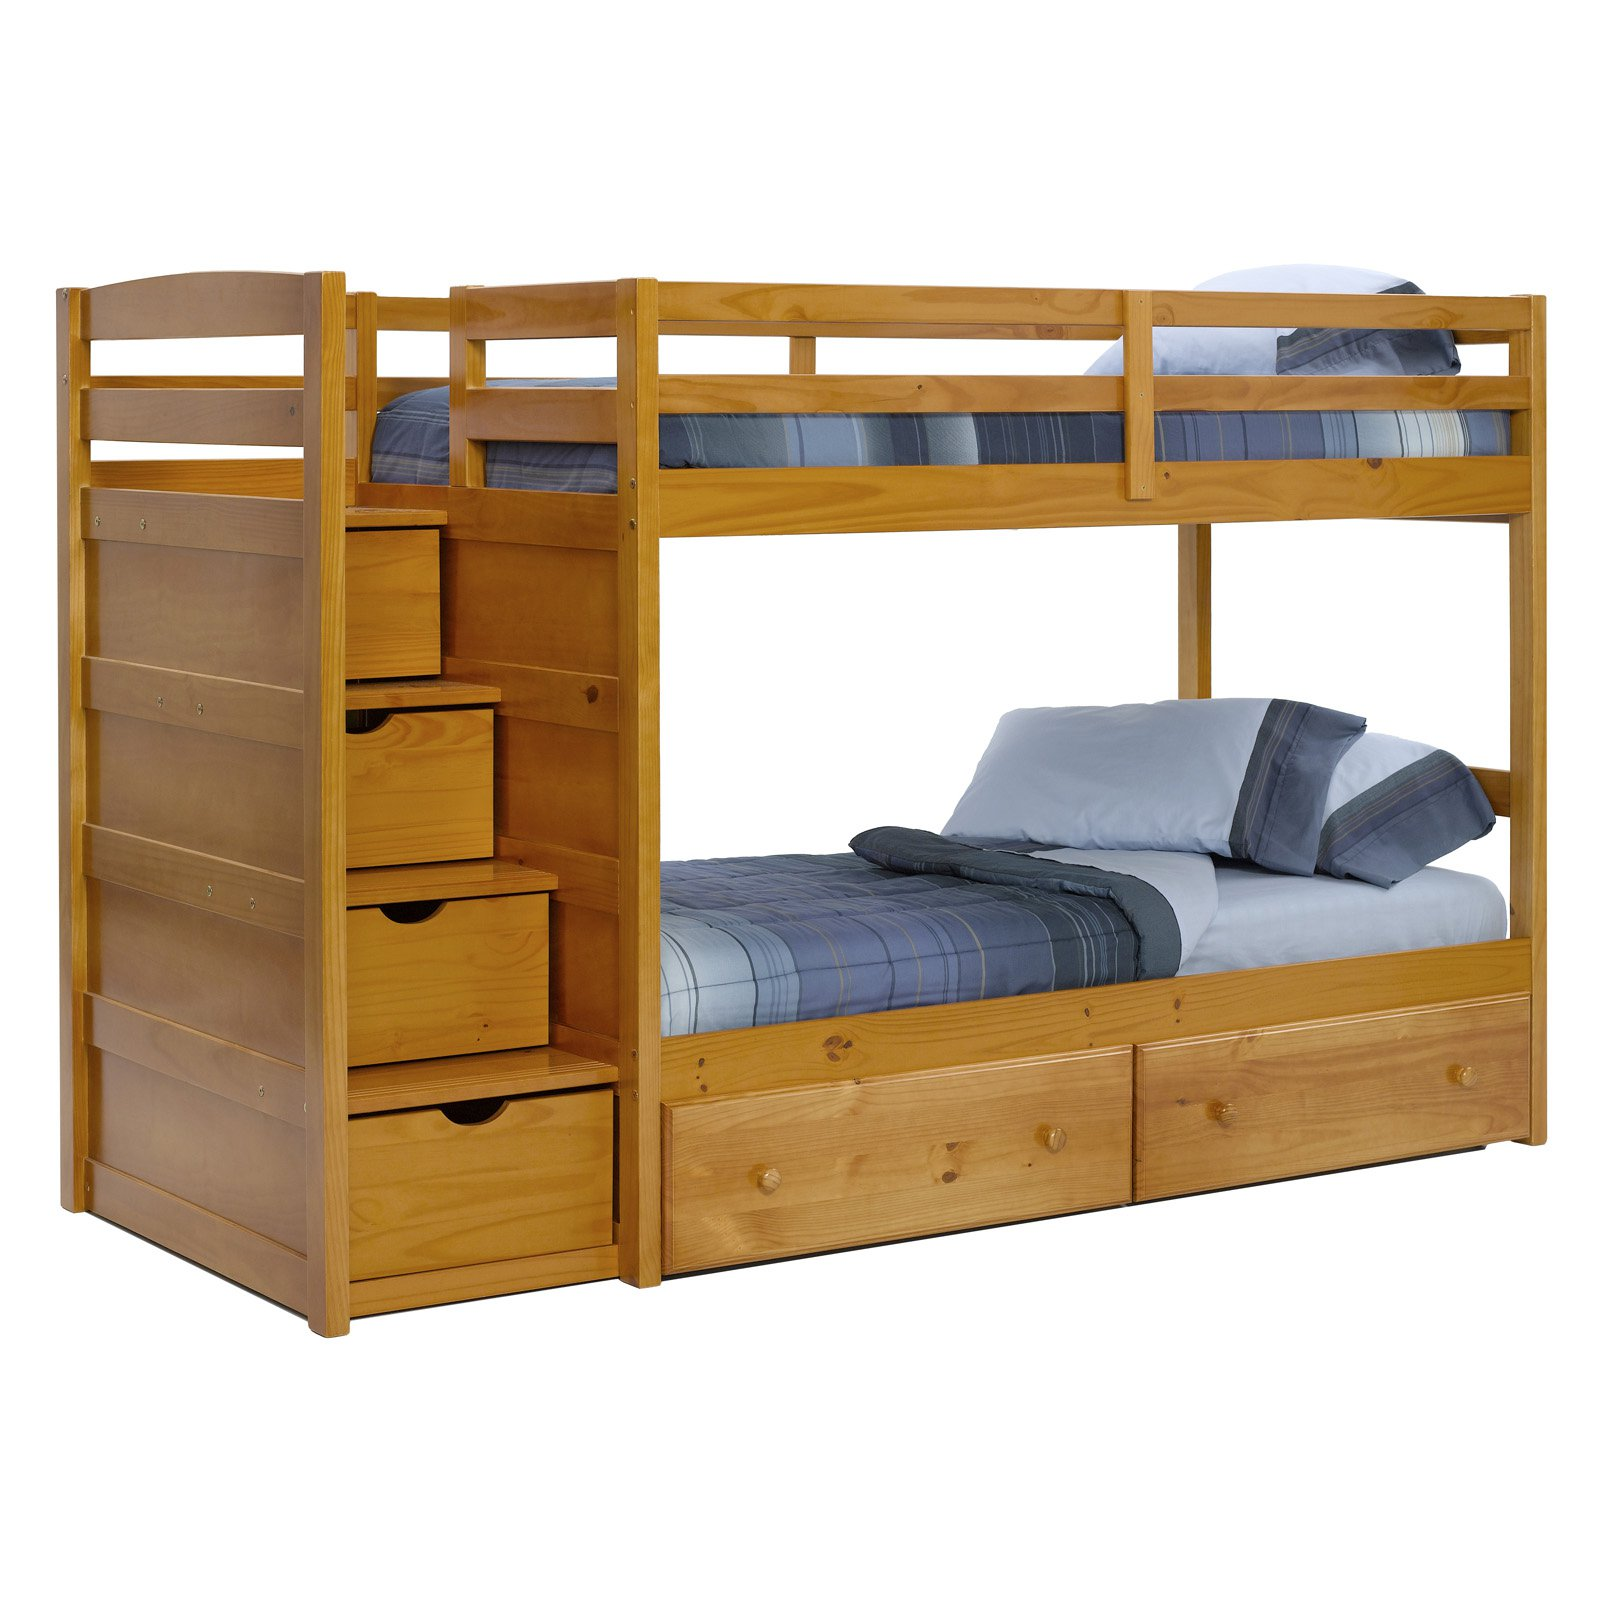 Image of: Low Loft Bed With Stairs